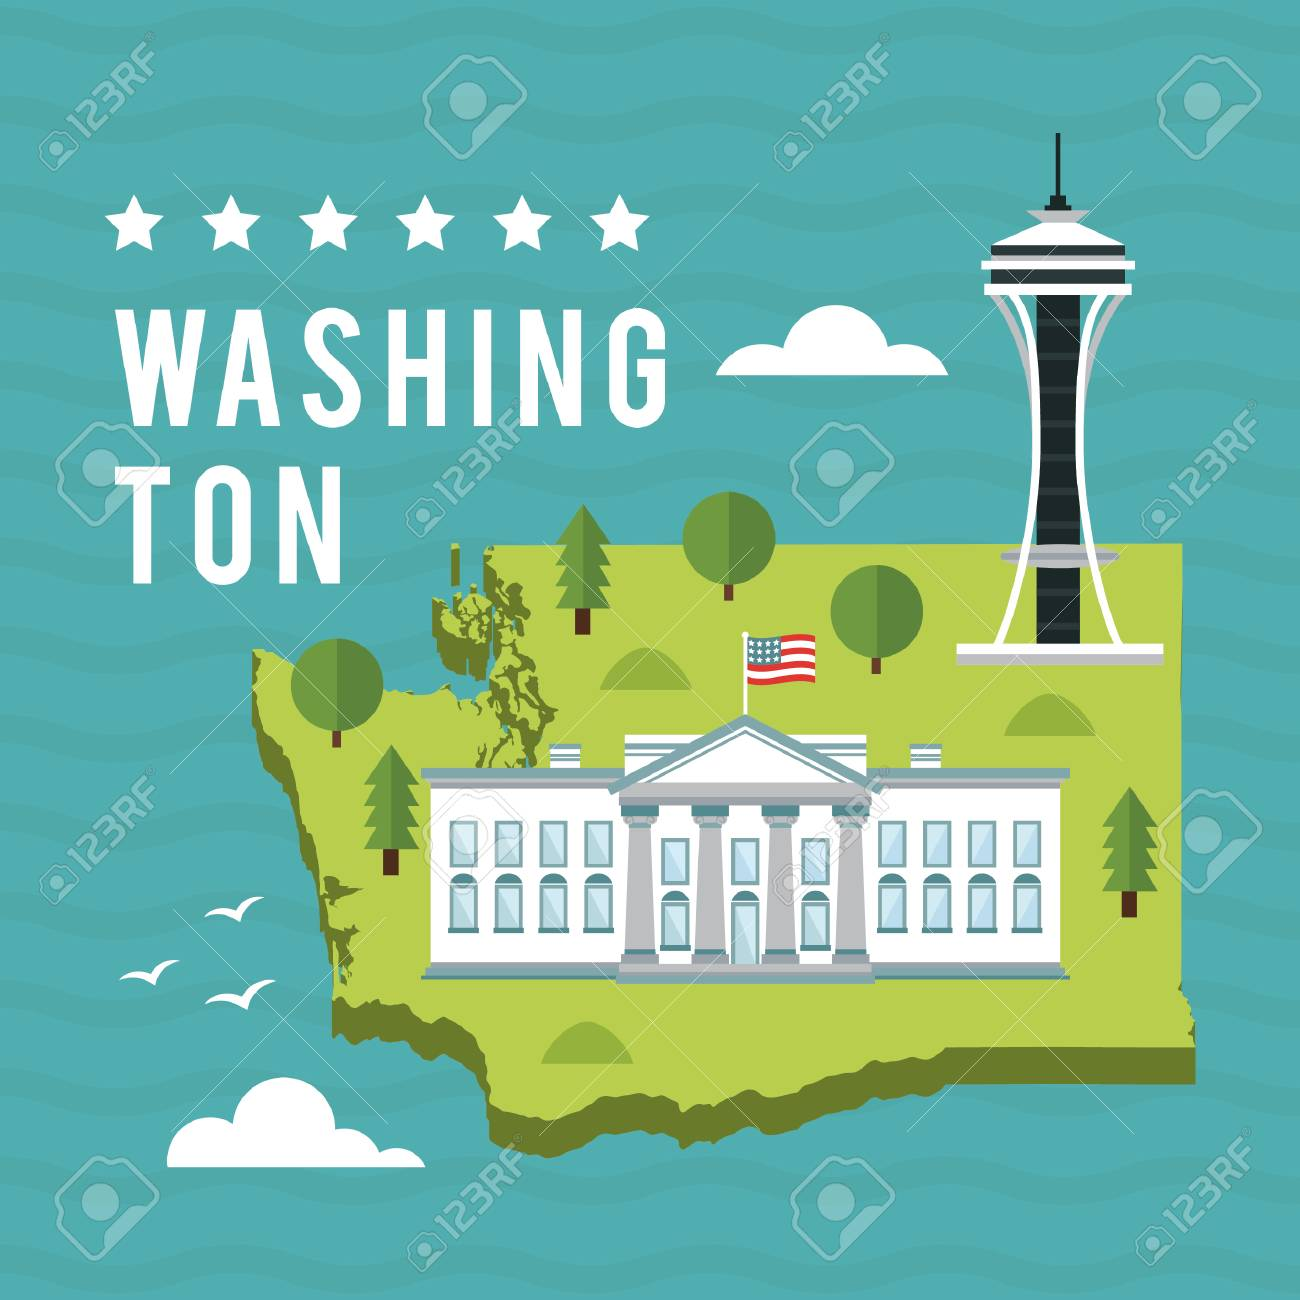 Map Of Washington State Royalty Free Cliparts, Vectors, And Stock ...